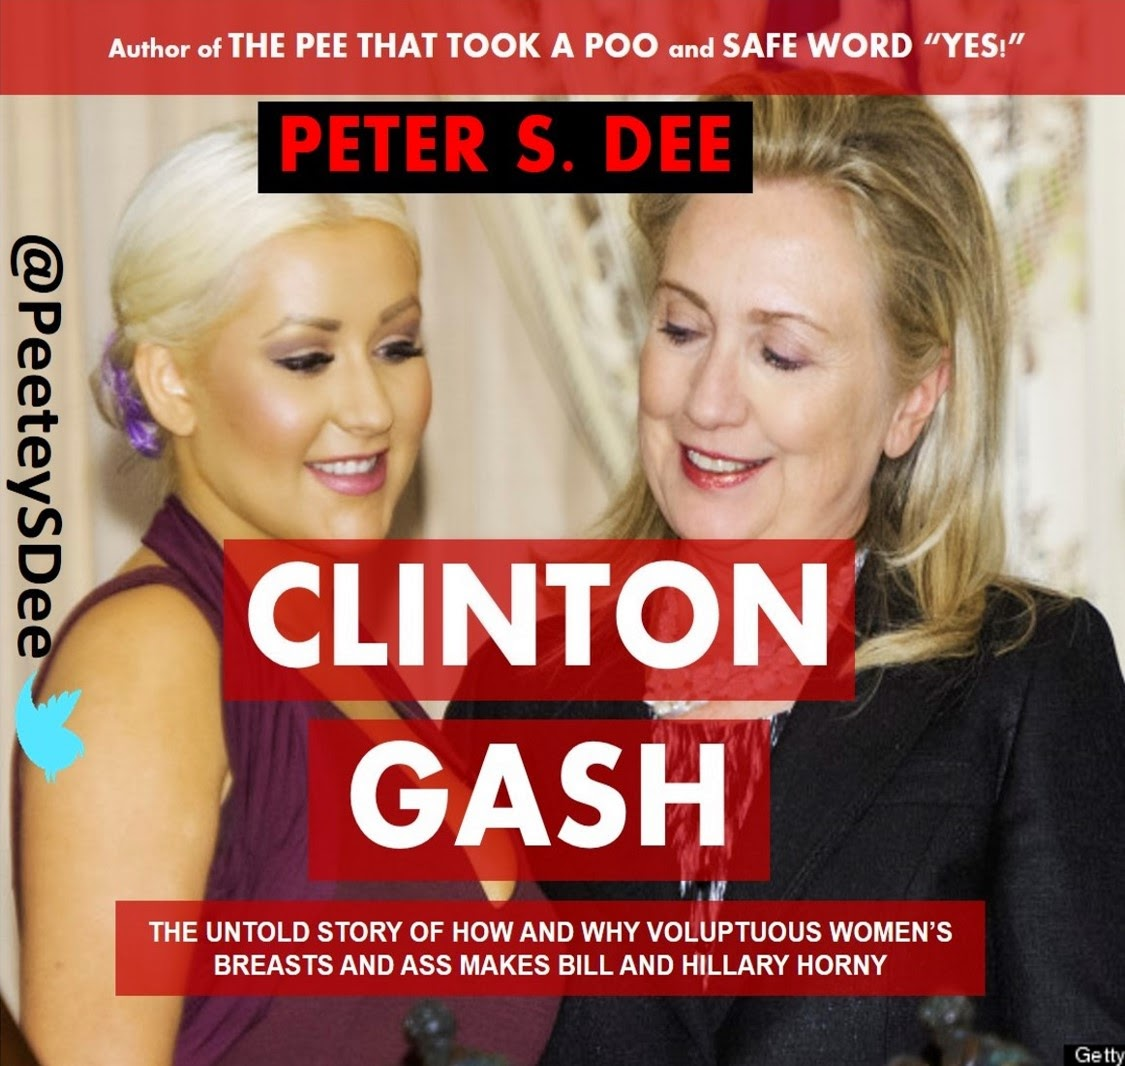 The Clintons and Gash